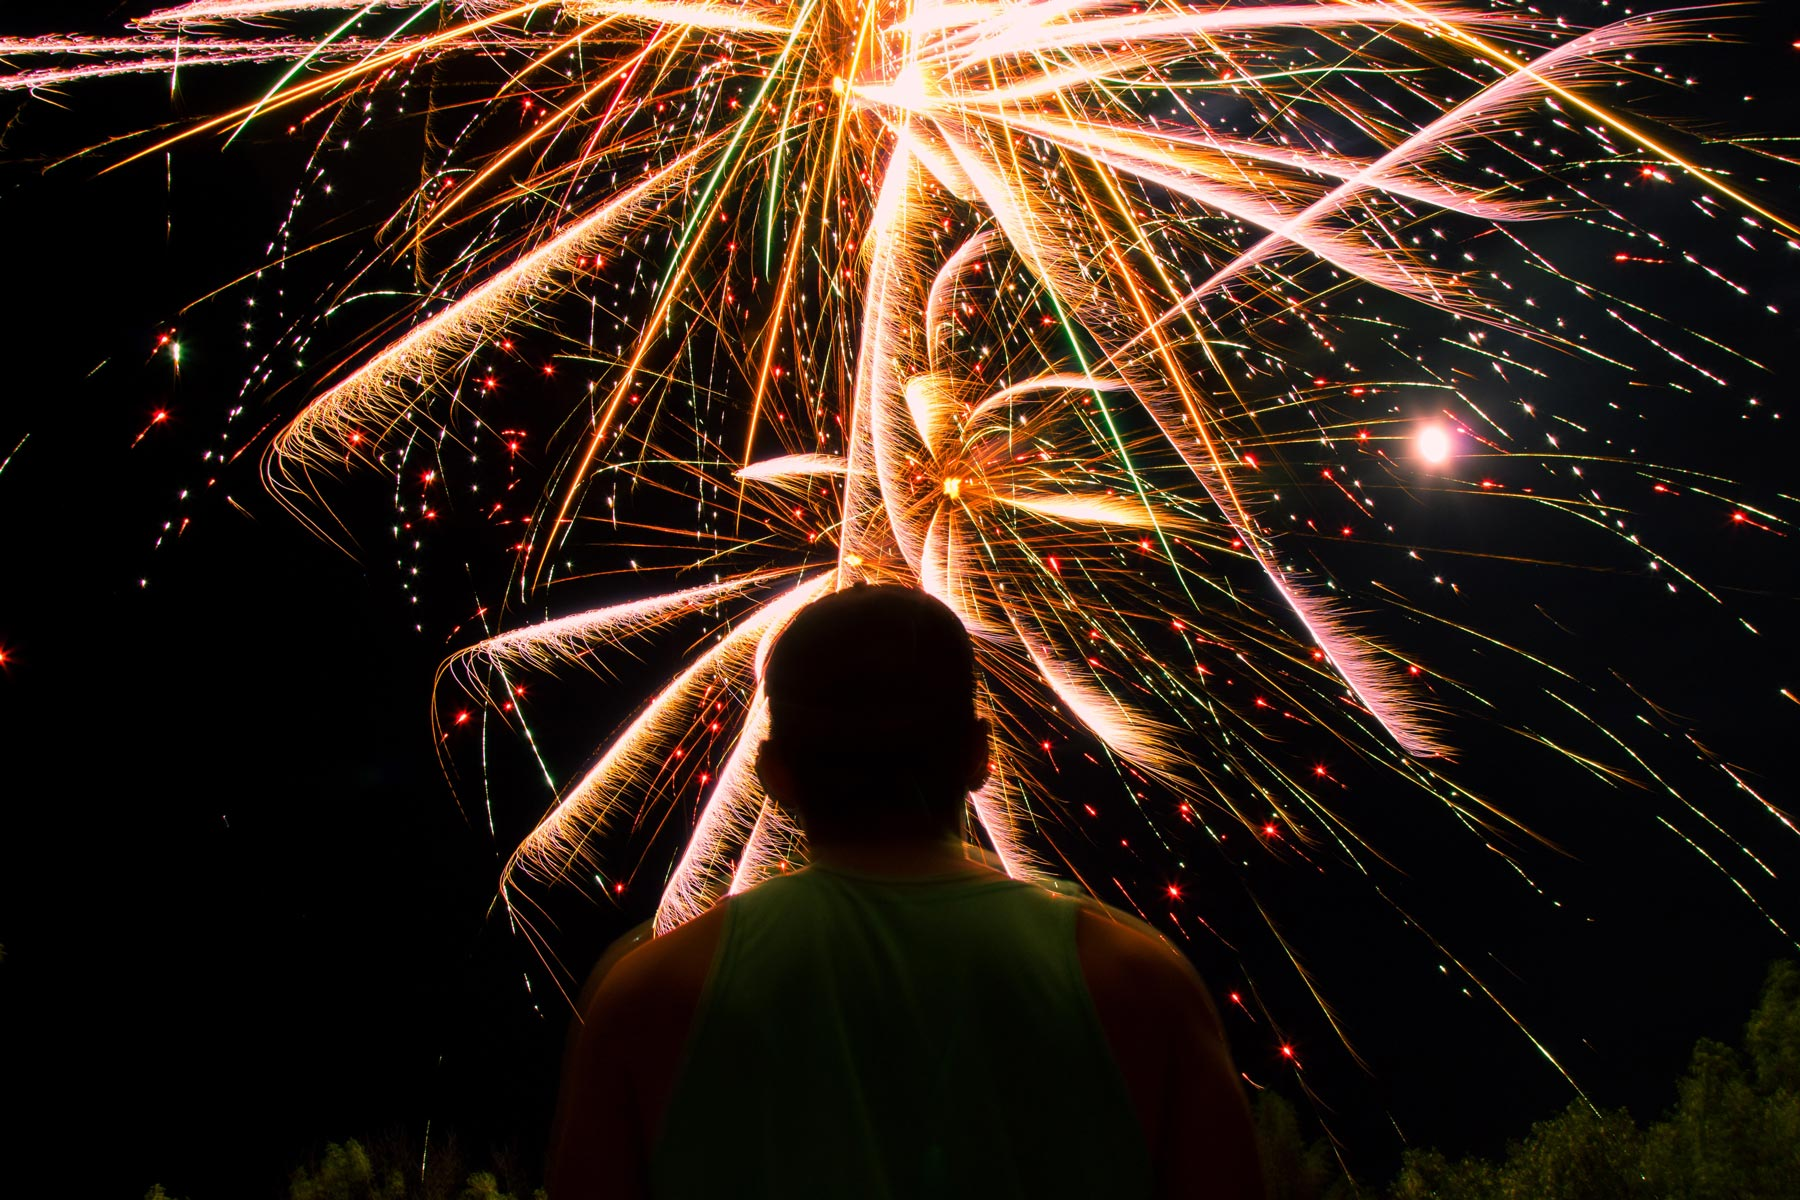 Image of a man looking up at fireworks in the night sky